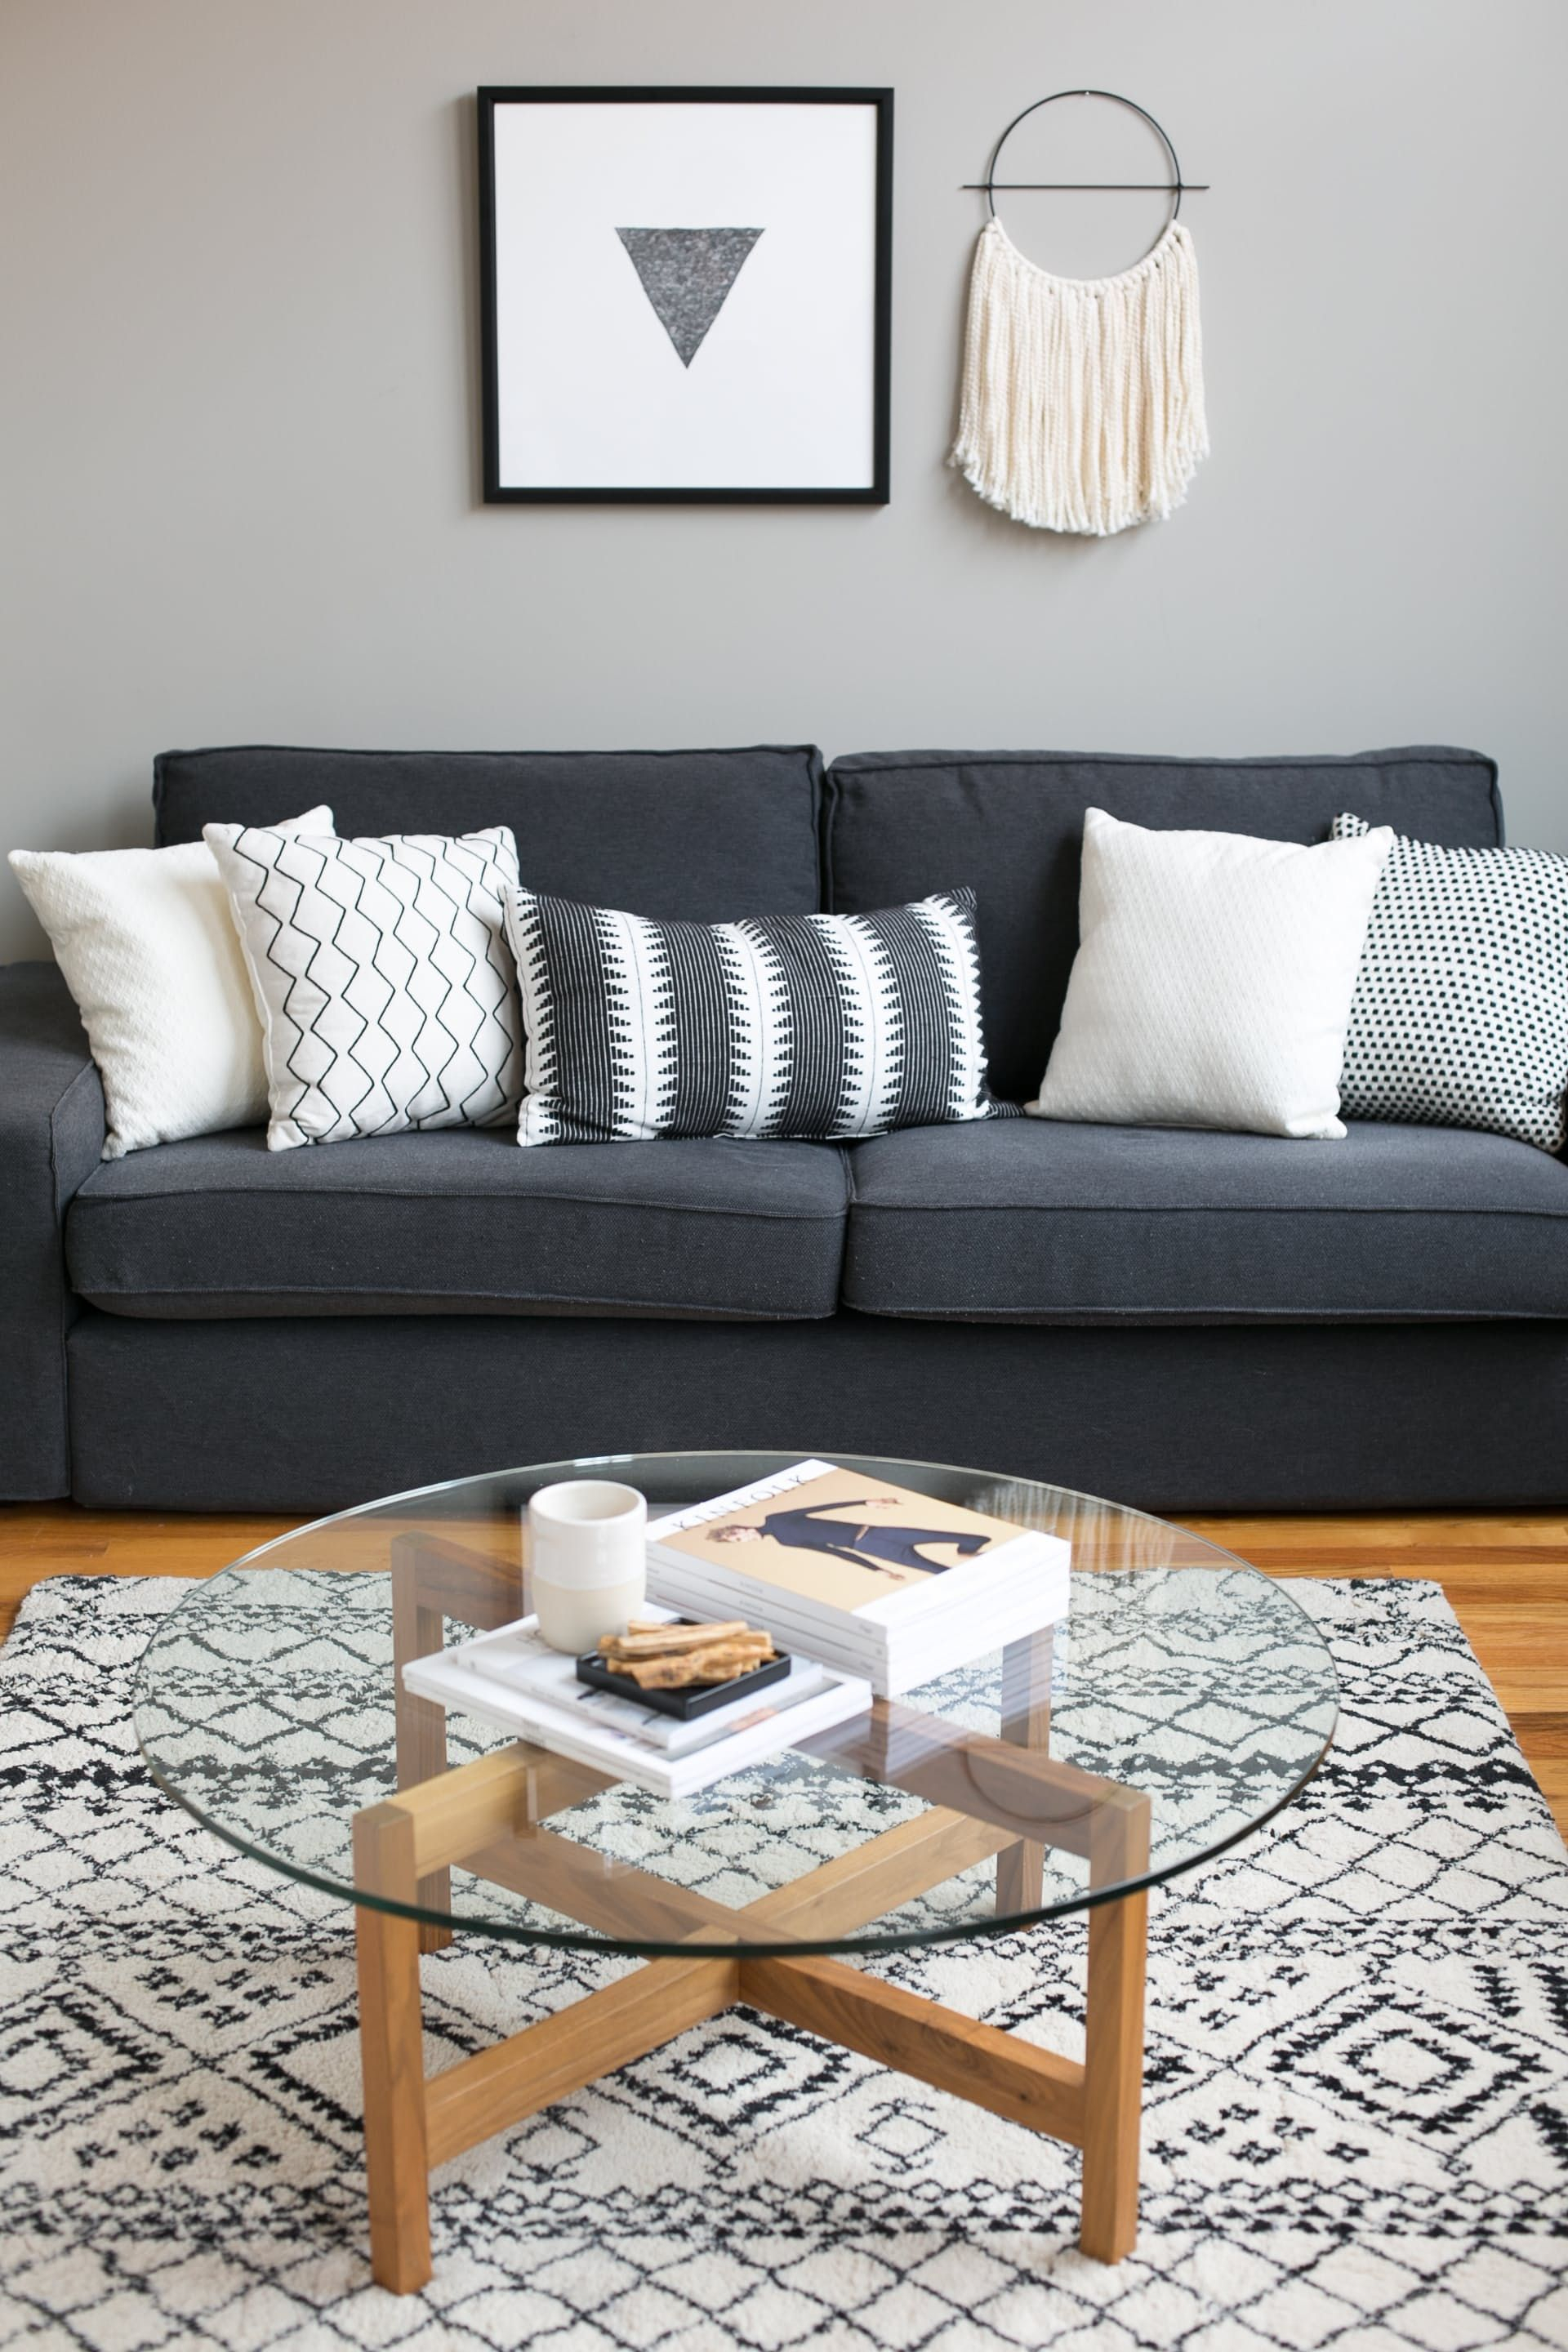 5 Fail Proof Ways To Make Your Home Look More Expensive | Tasarimlar For London Dark Grey Sofa Chairs (Image 1 of 20)